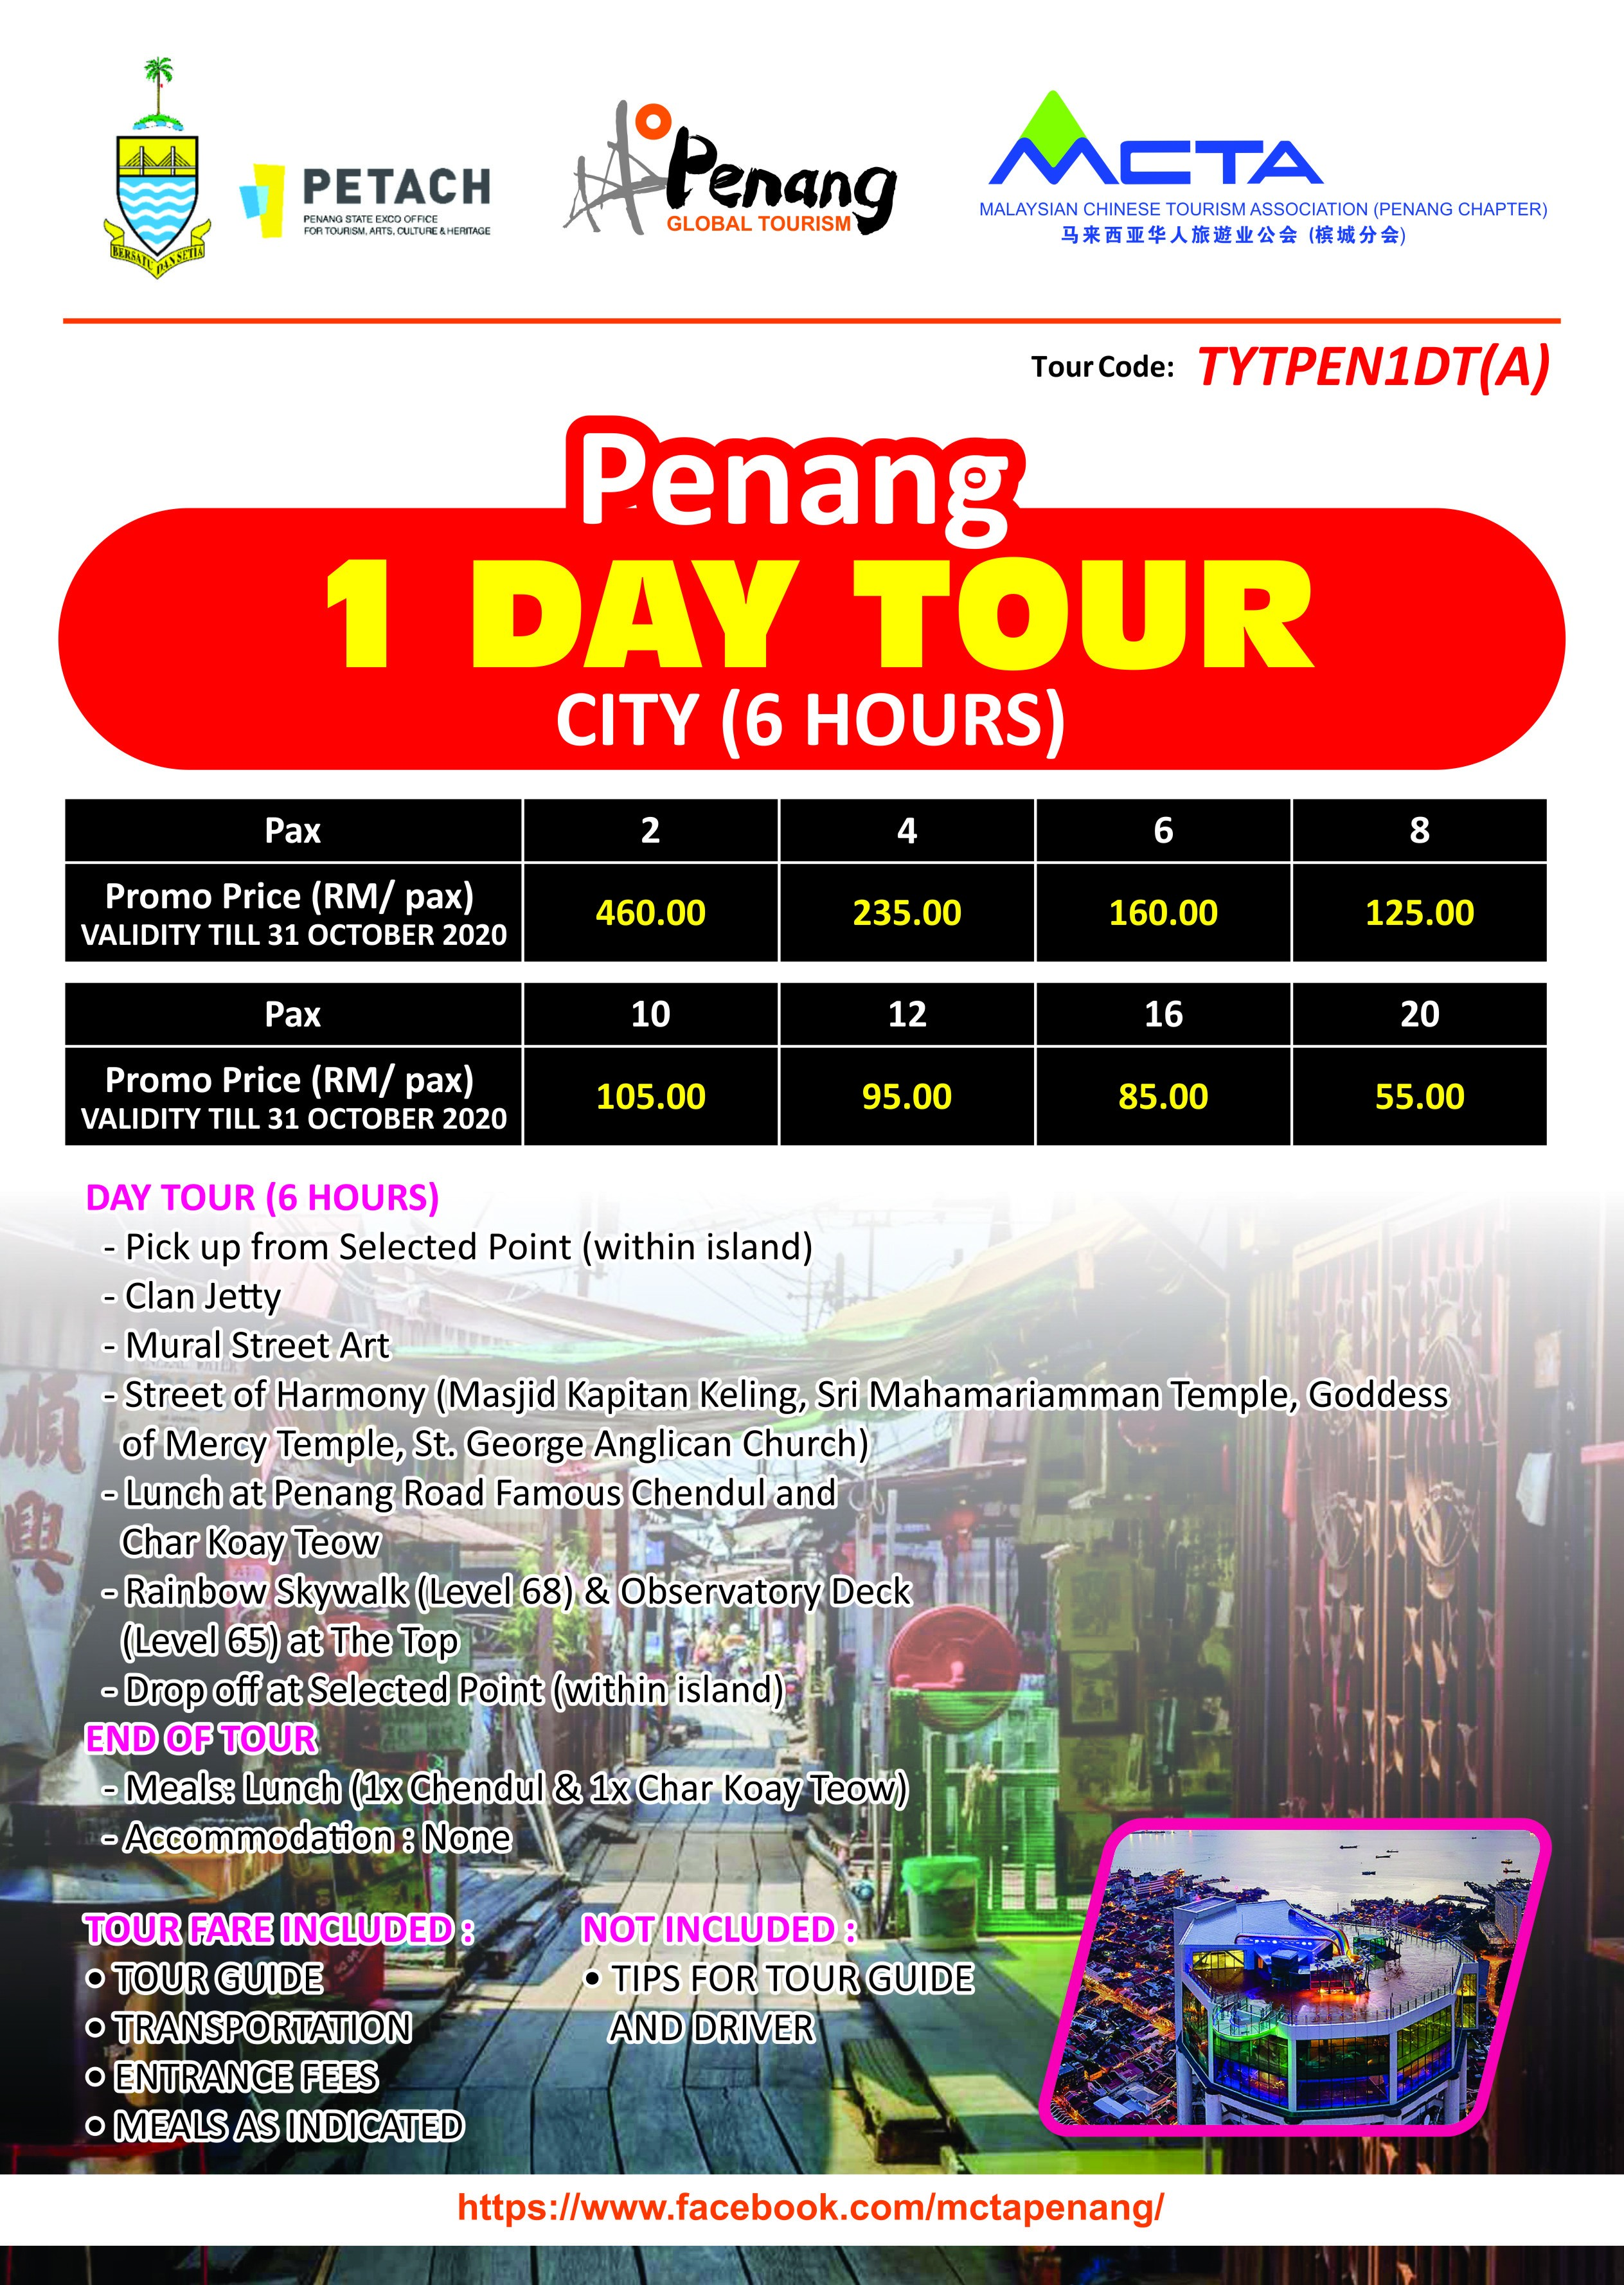 Penang 1 Day Tour - City (6 Hours)